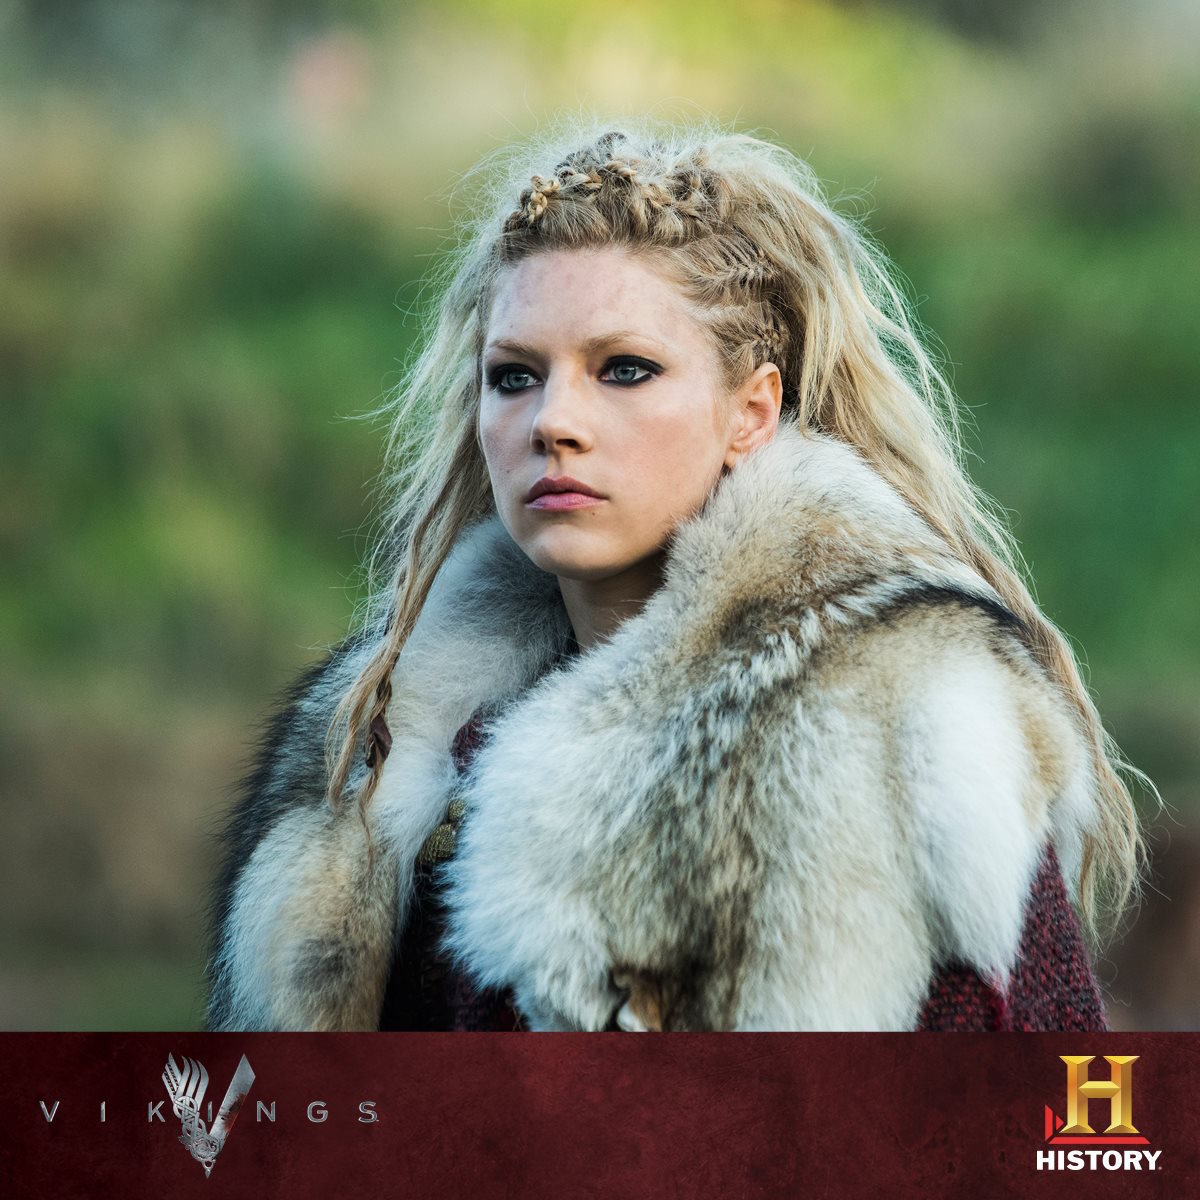 The Hairstyles Of Vikings Have Earned These Comprehensive Rankings